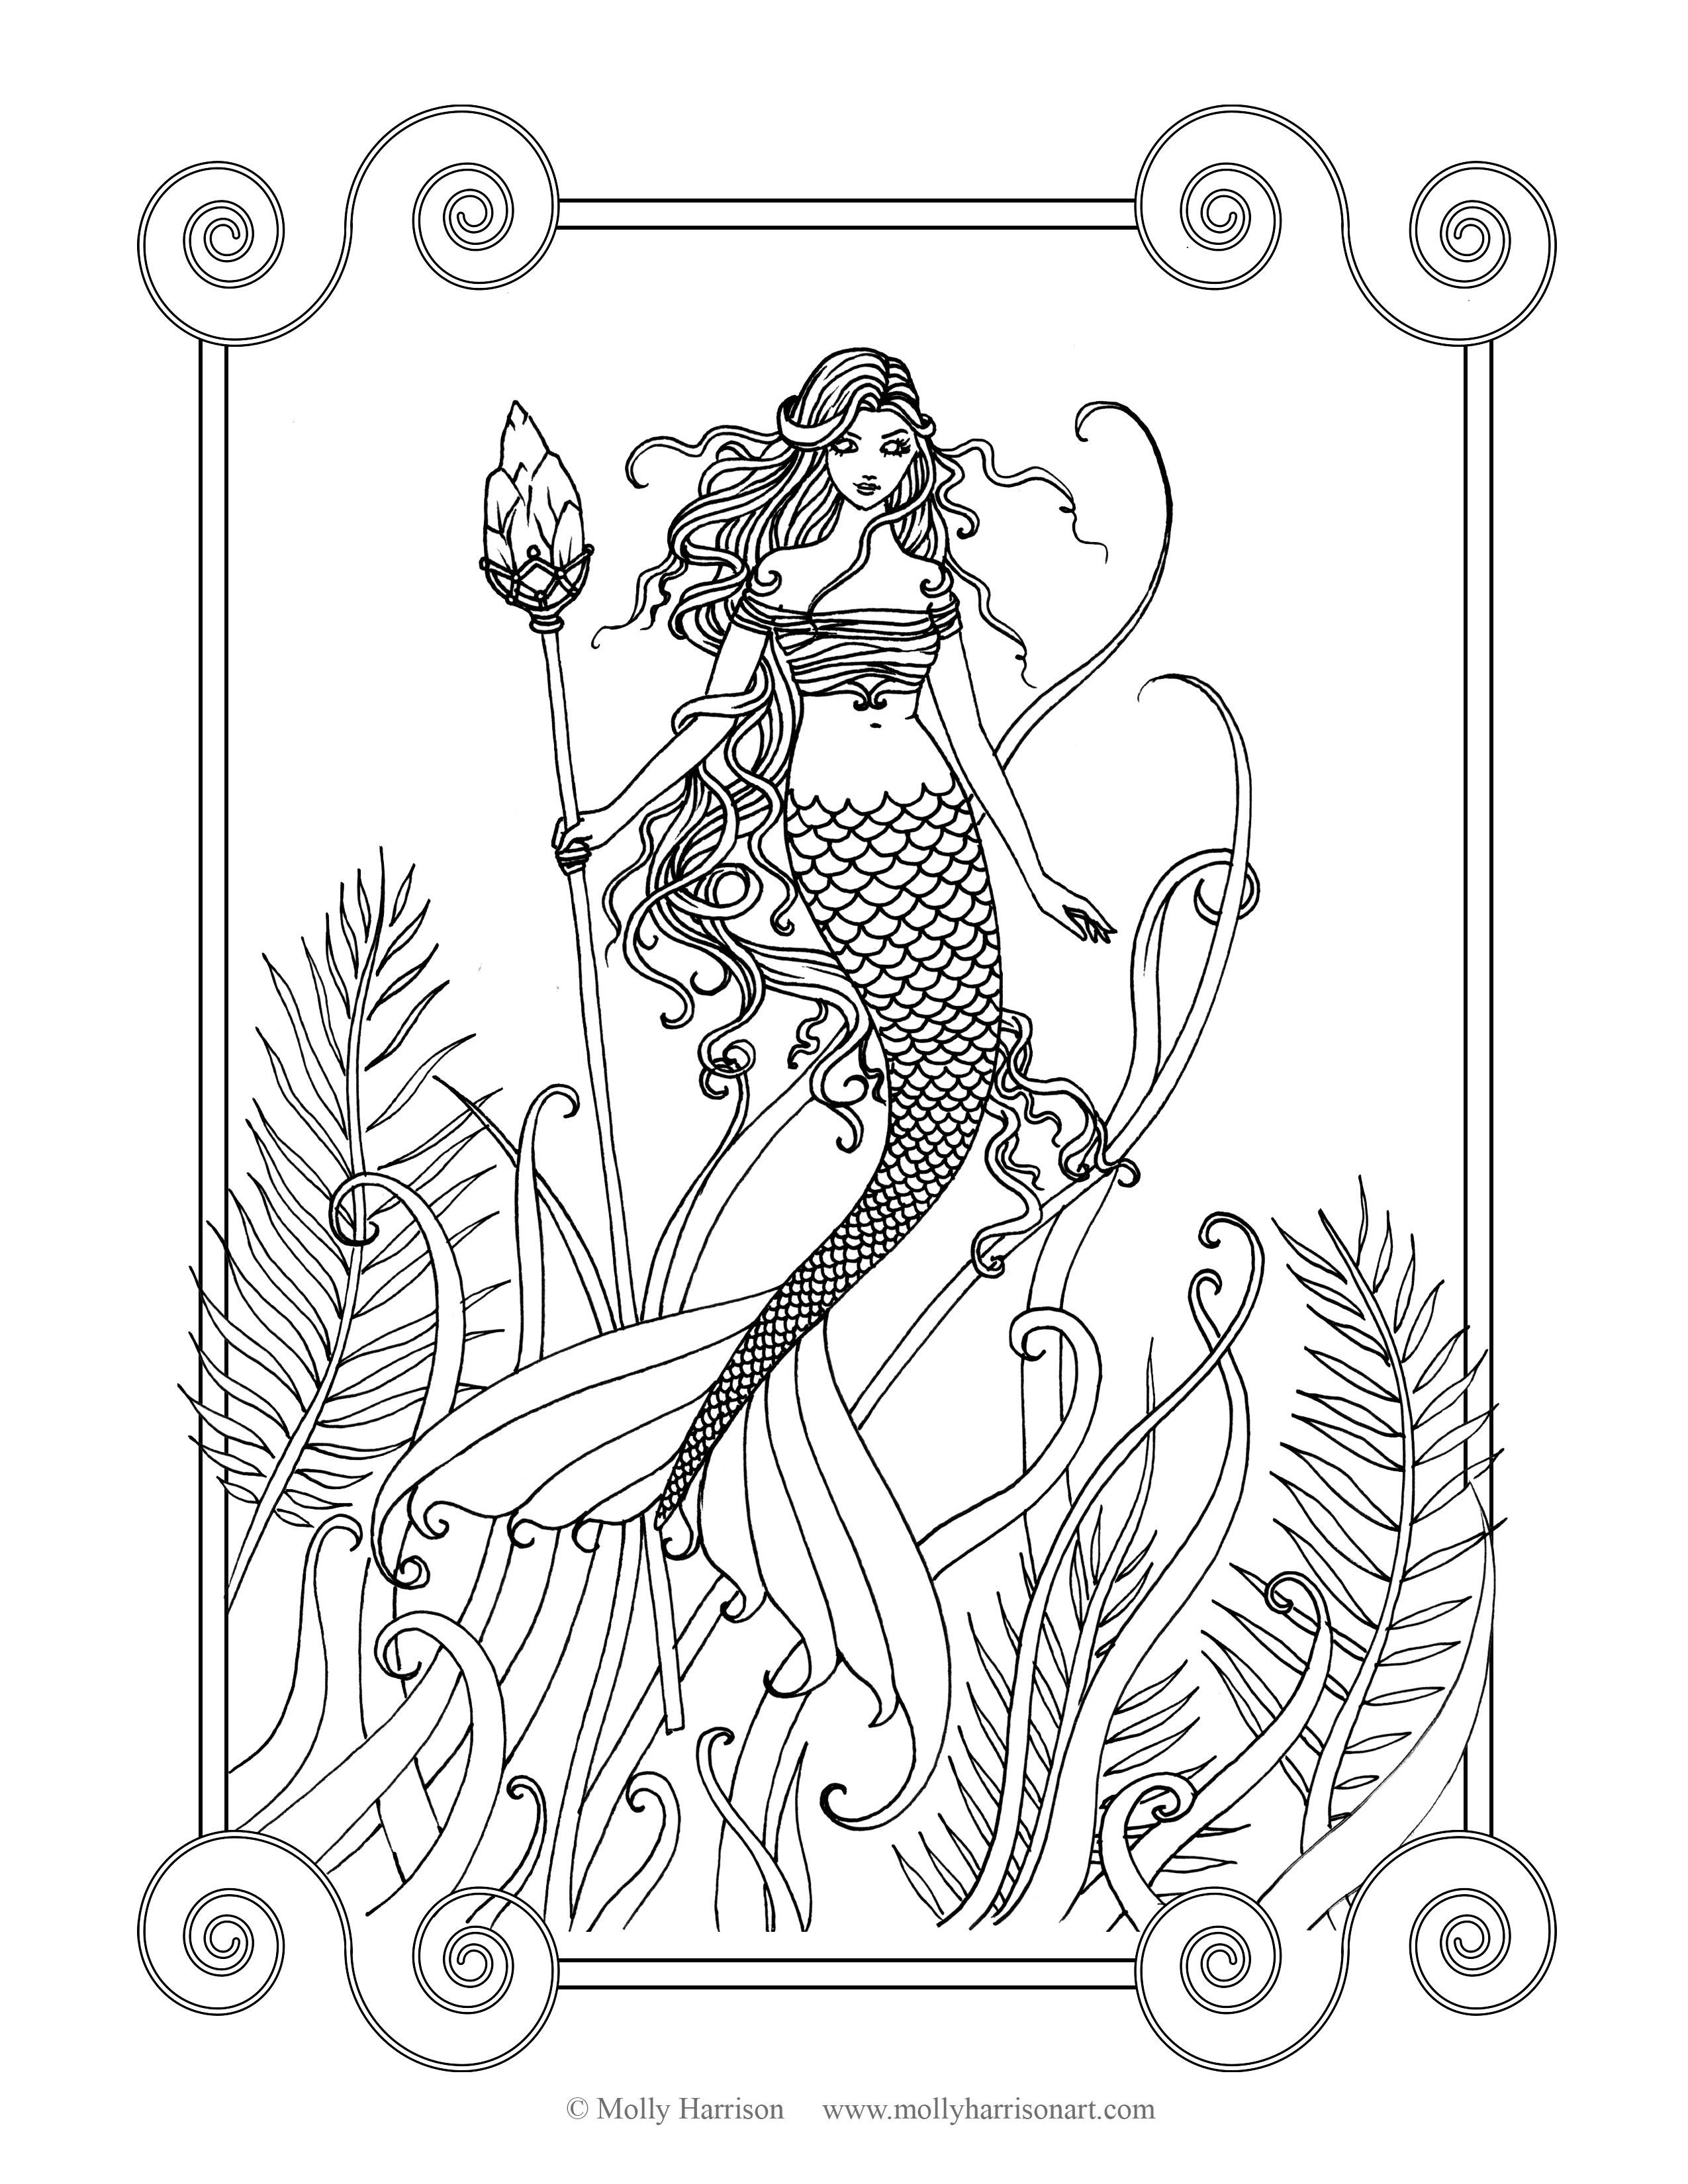 Free Mermaid Coloring Page By Molly Harrison Fantasy Art Amethyst Sea